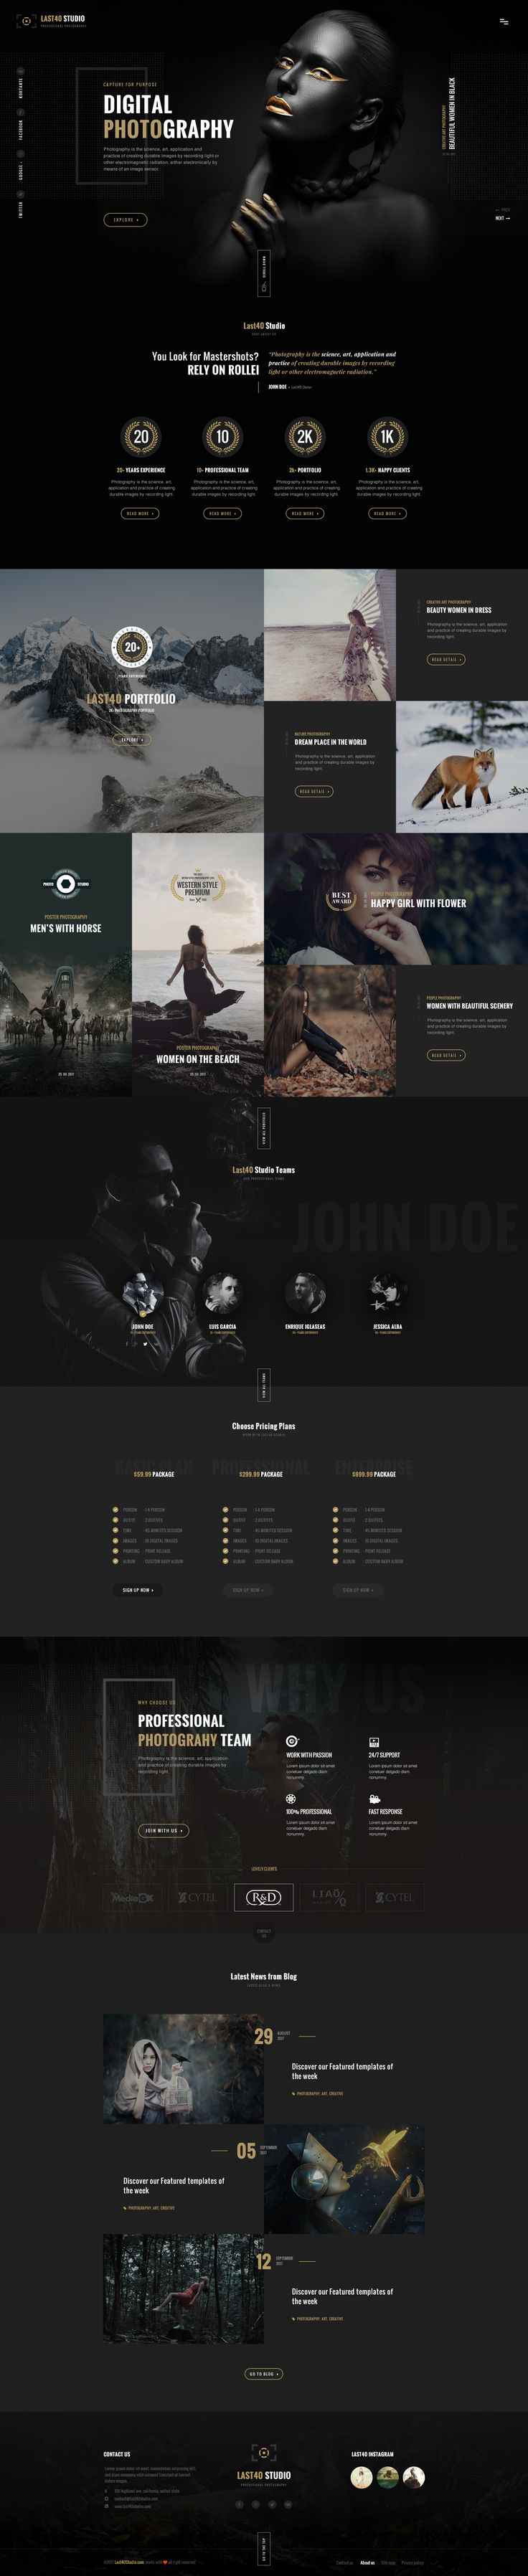 LAST40 Studio on Behance